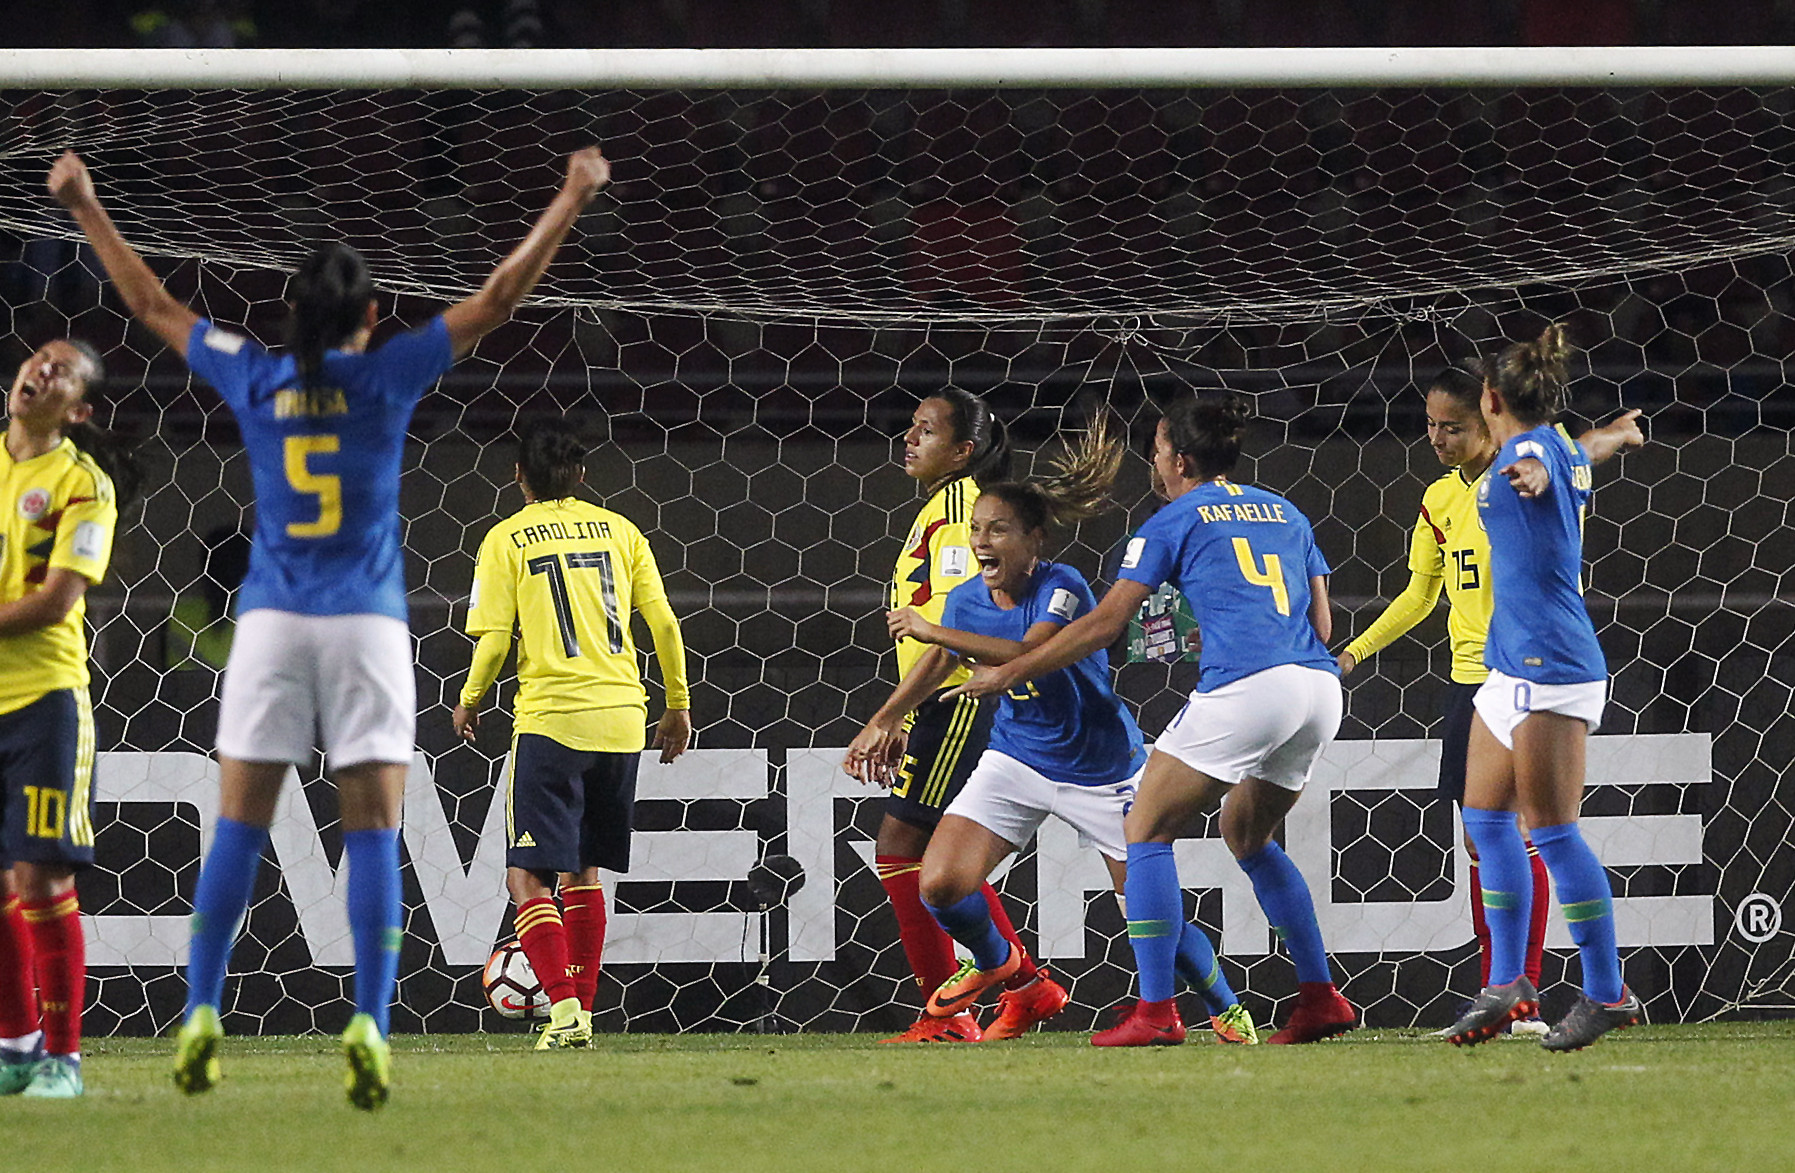 Mônica celebrates scoring her second goal of the match and fourth of the tournament as Brazil beat Colombia 3-0 to win the Copa América Femenina for a third consecutive time ©Getty Images